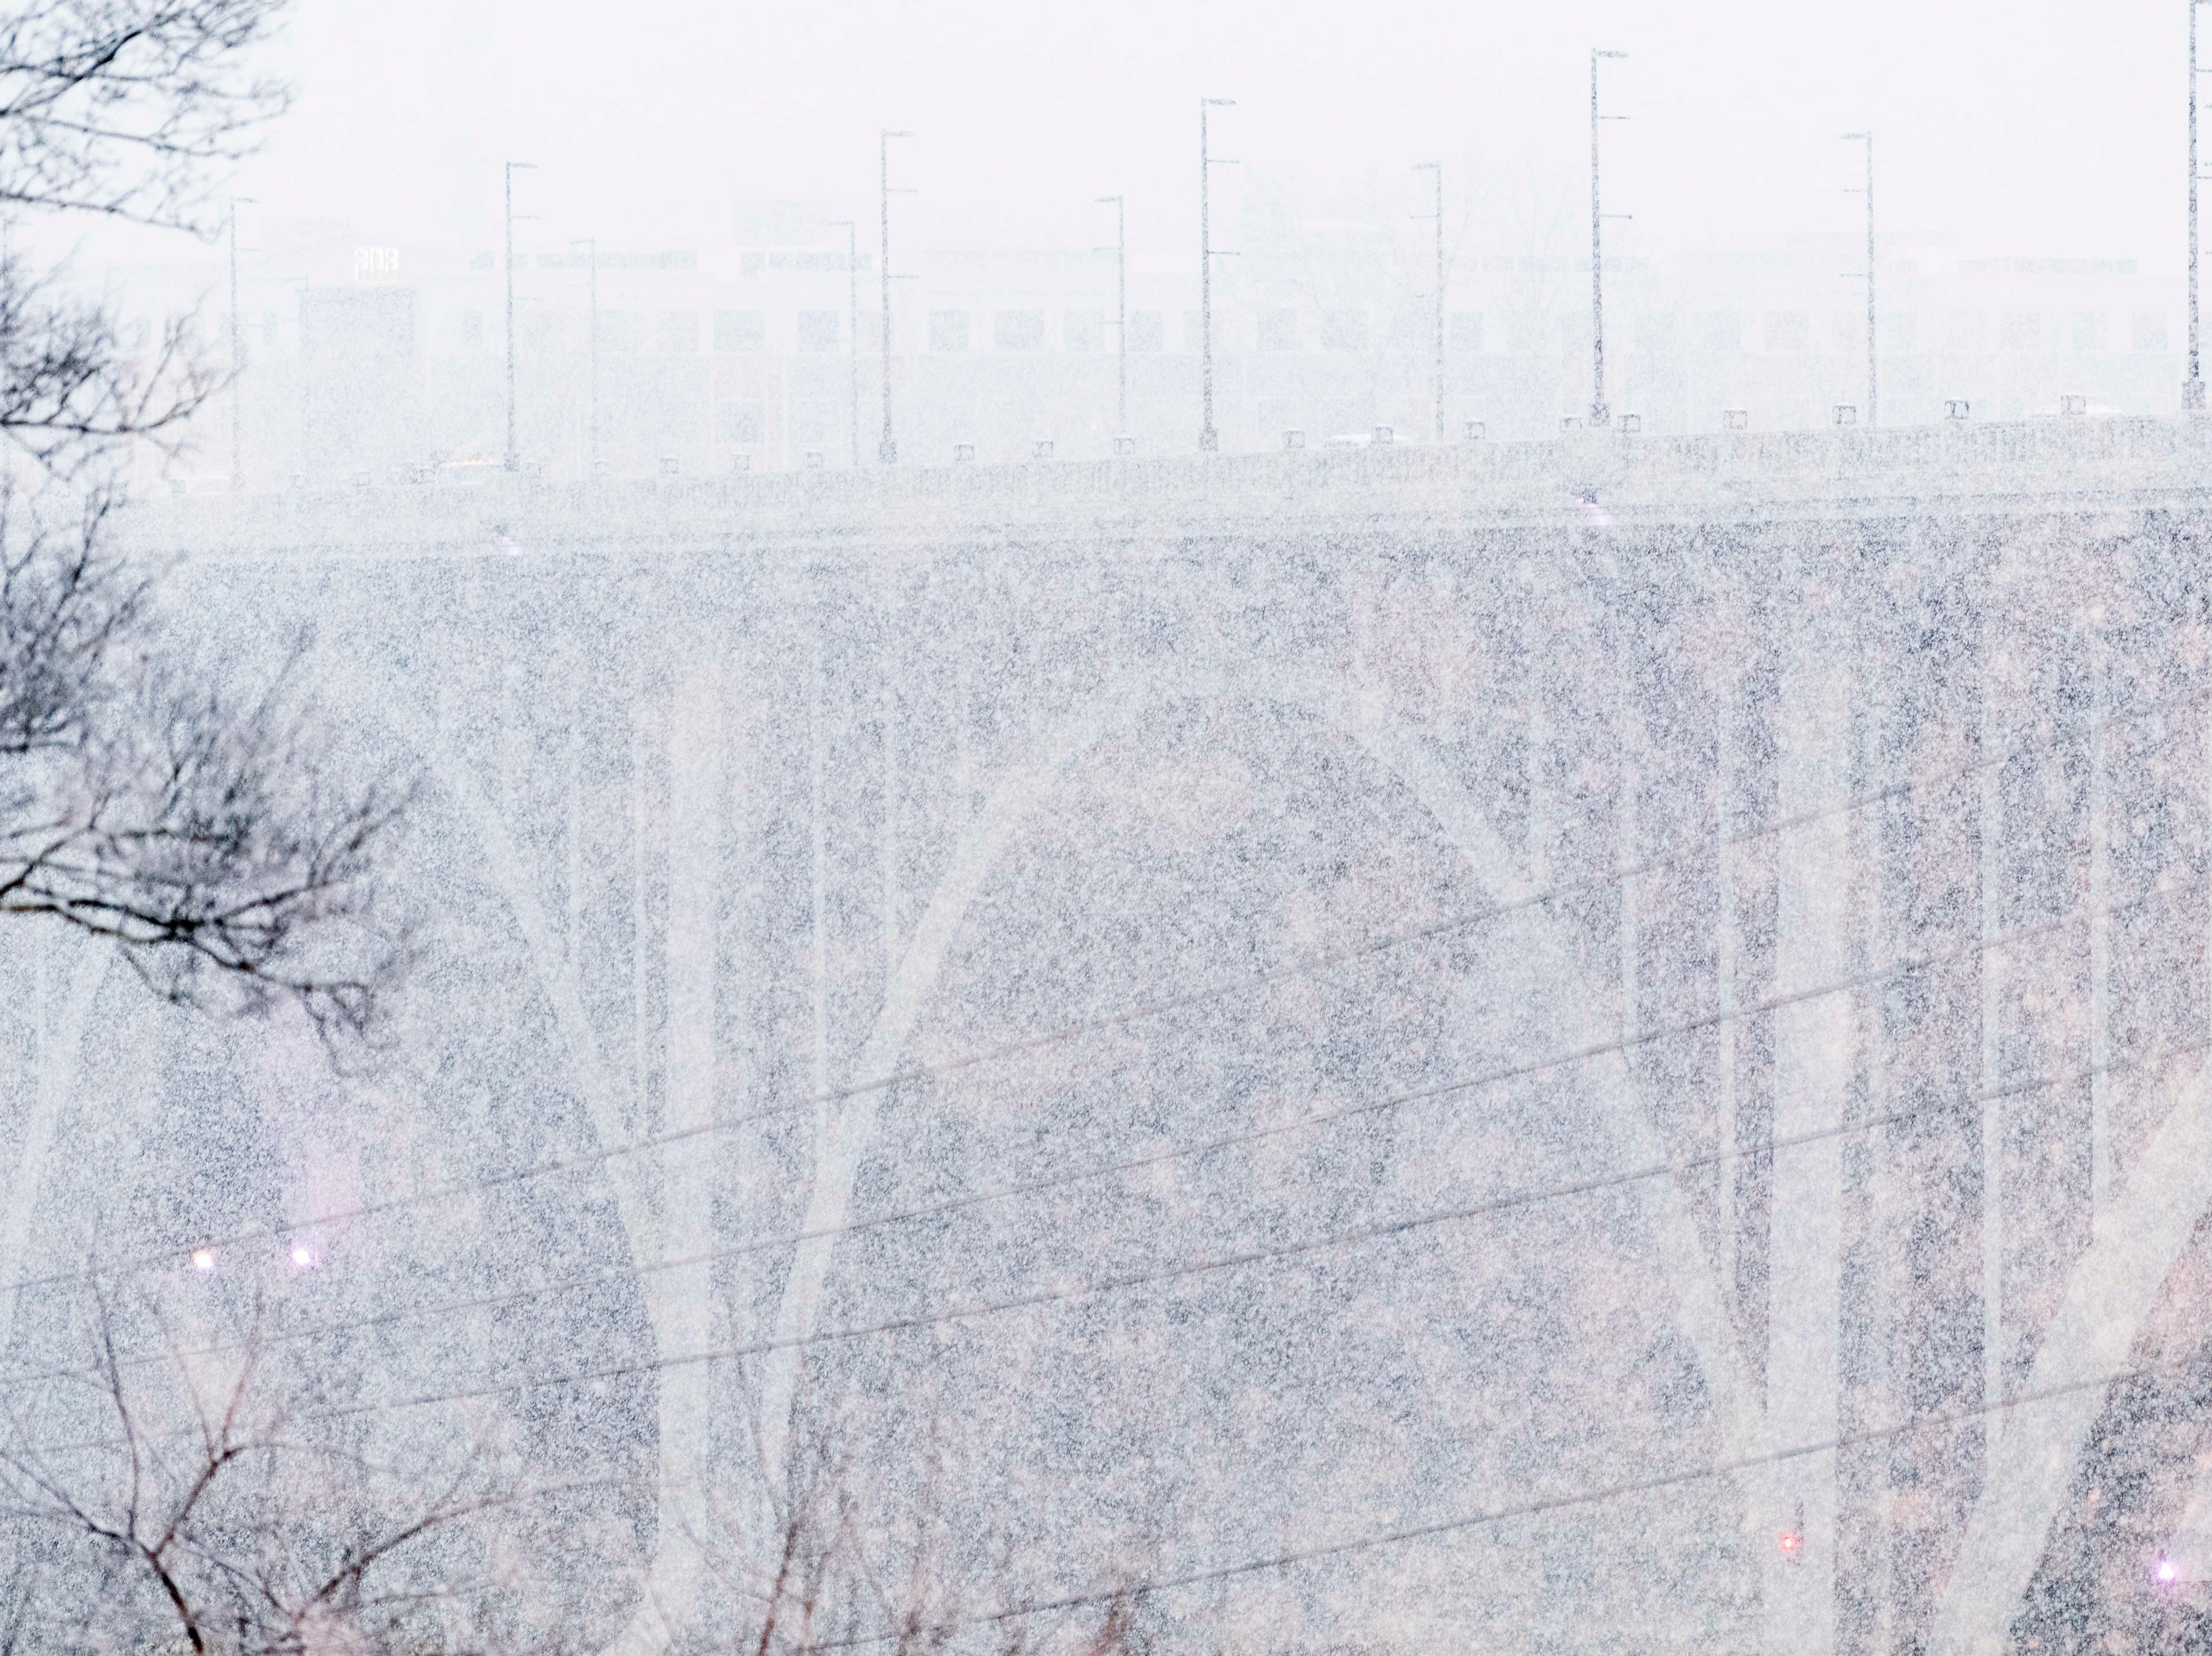 The Henley Street Bridge is barely visible through dense snowfall in Knoxville, Tennessee on Tuesday, January 29, 2019.